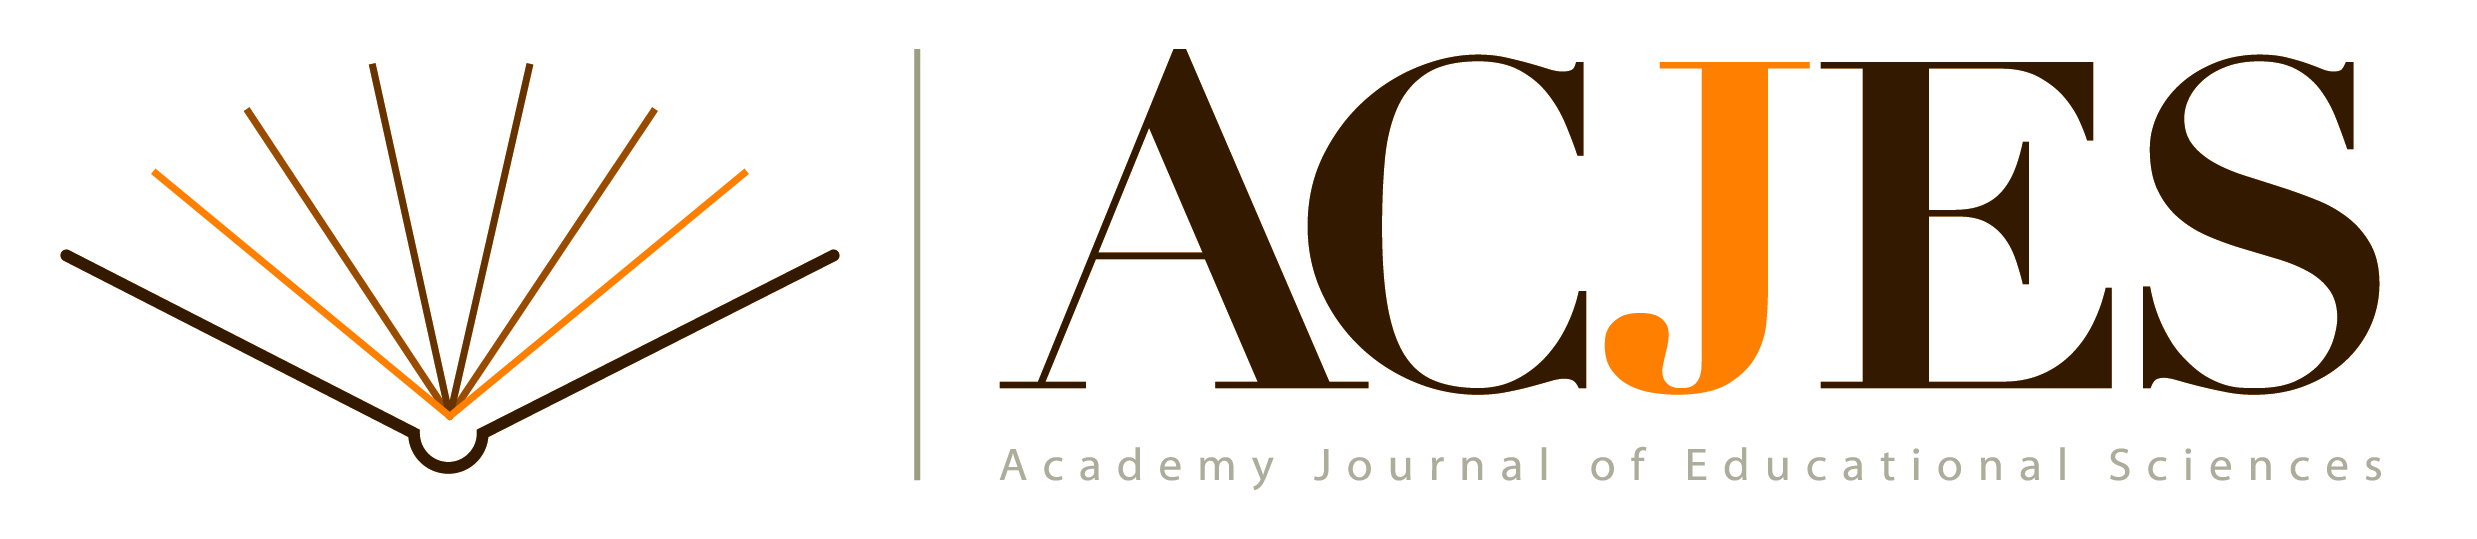 Academy Journal of Educational Sciences